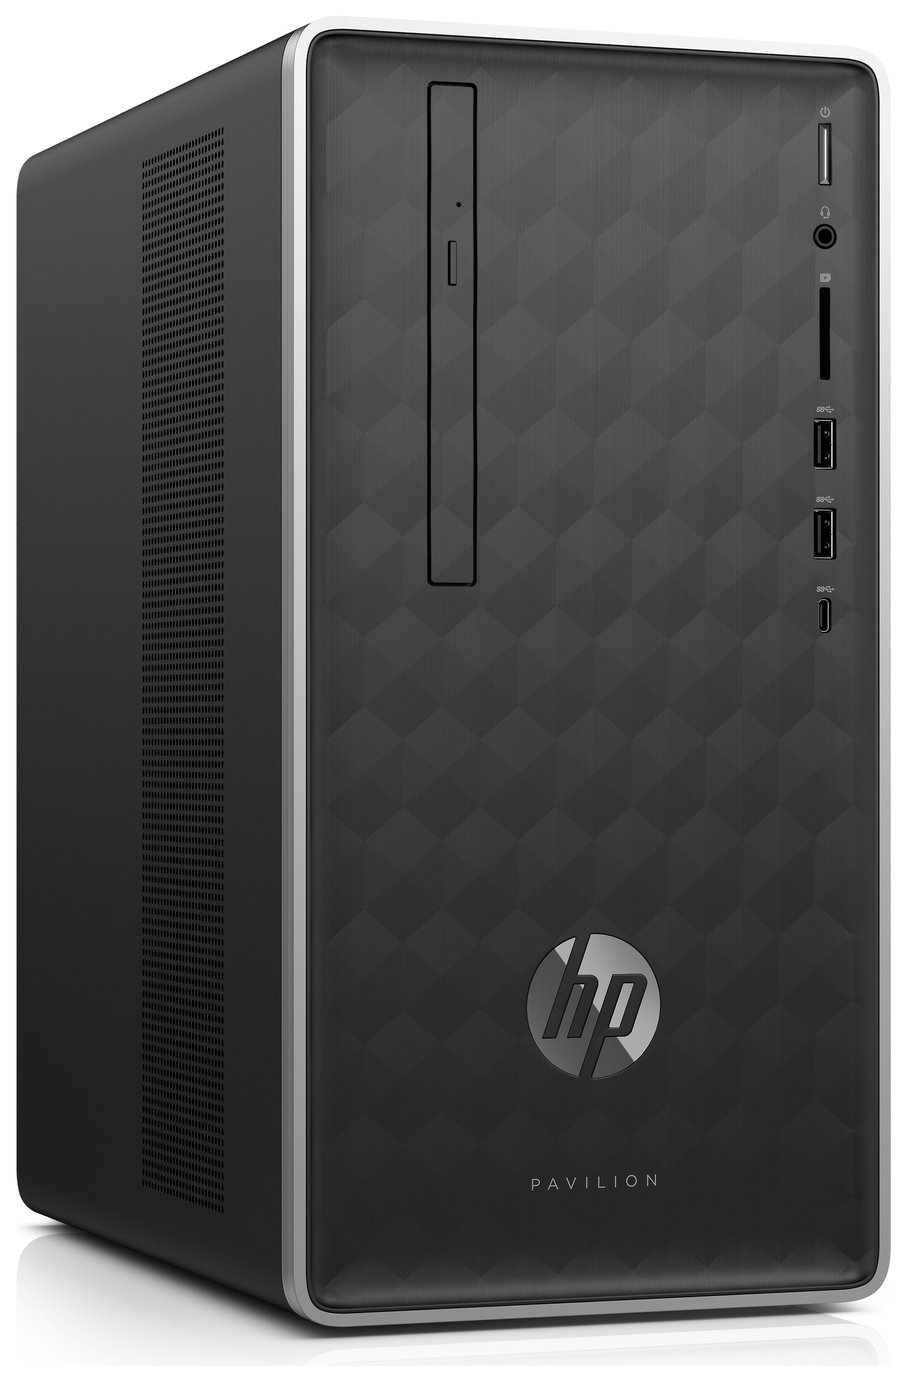 HP Pavilion i3 4GB 1TB Desktop PC - Black